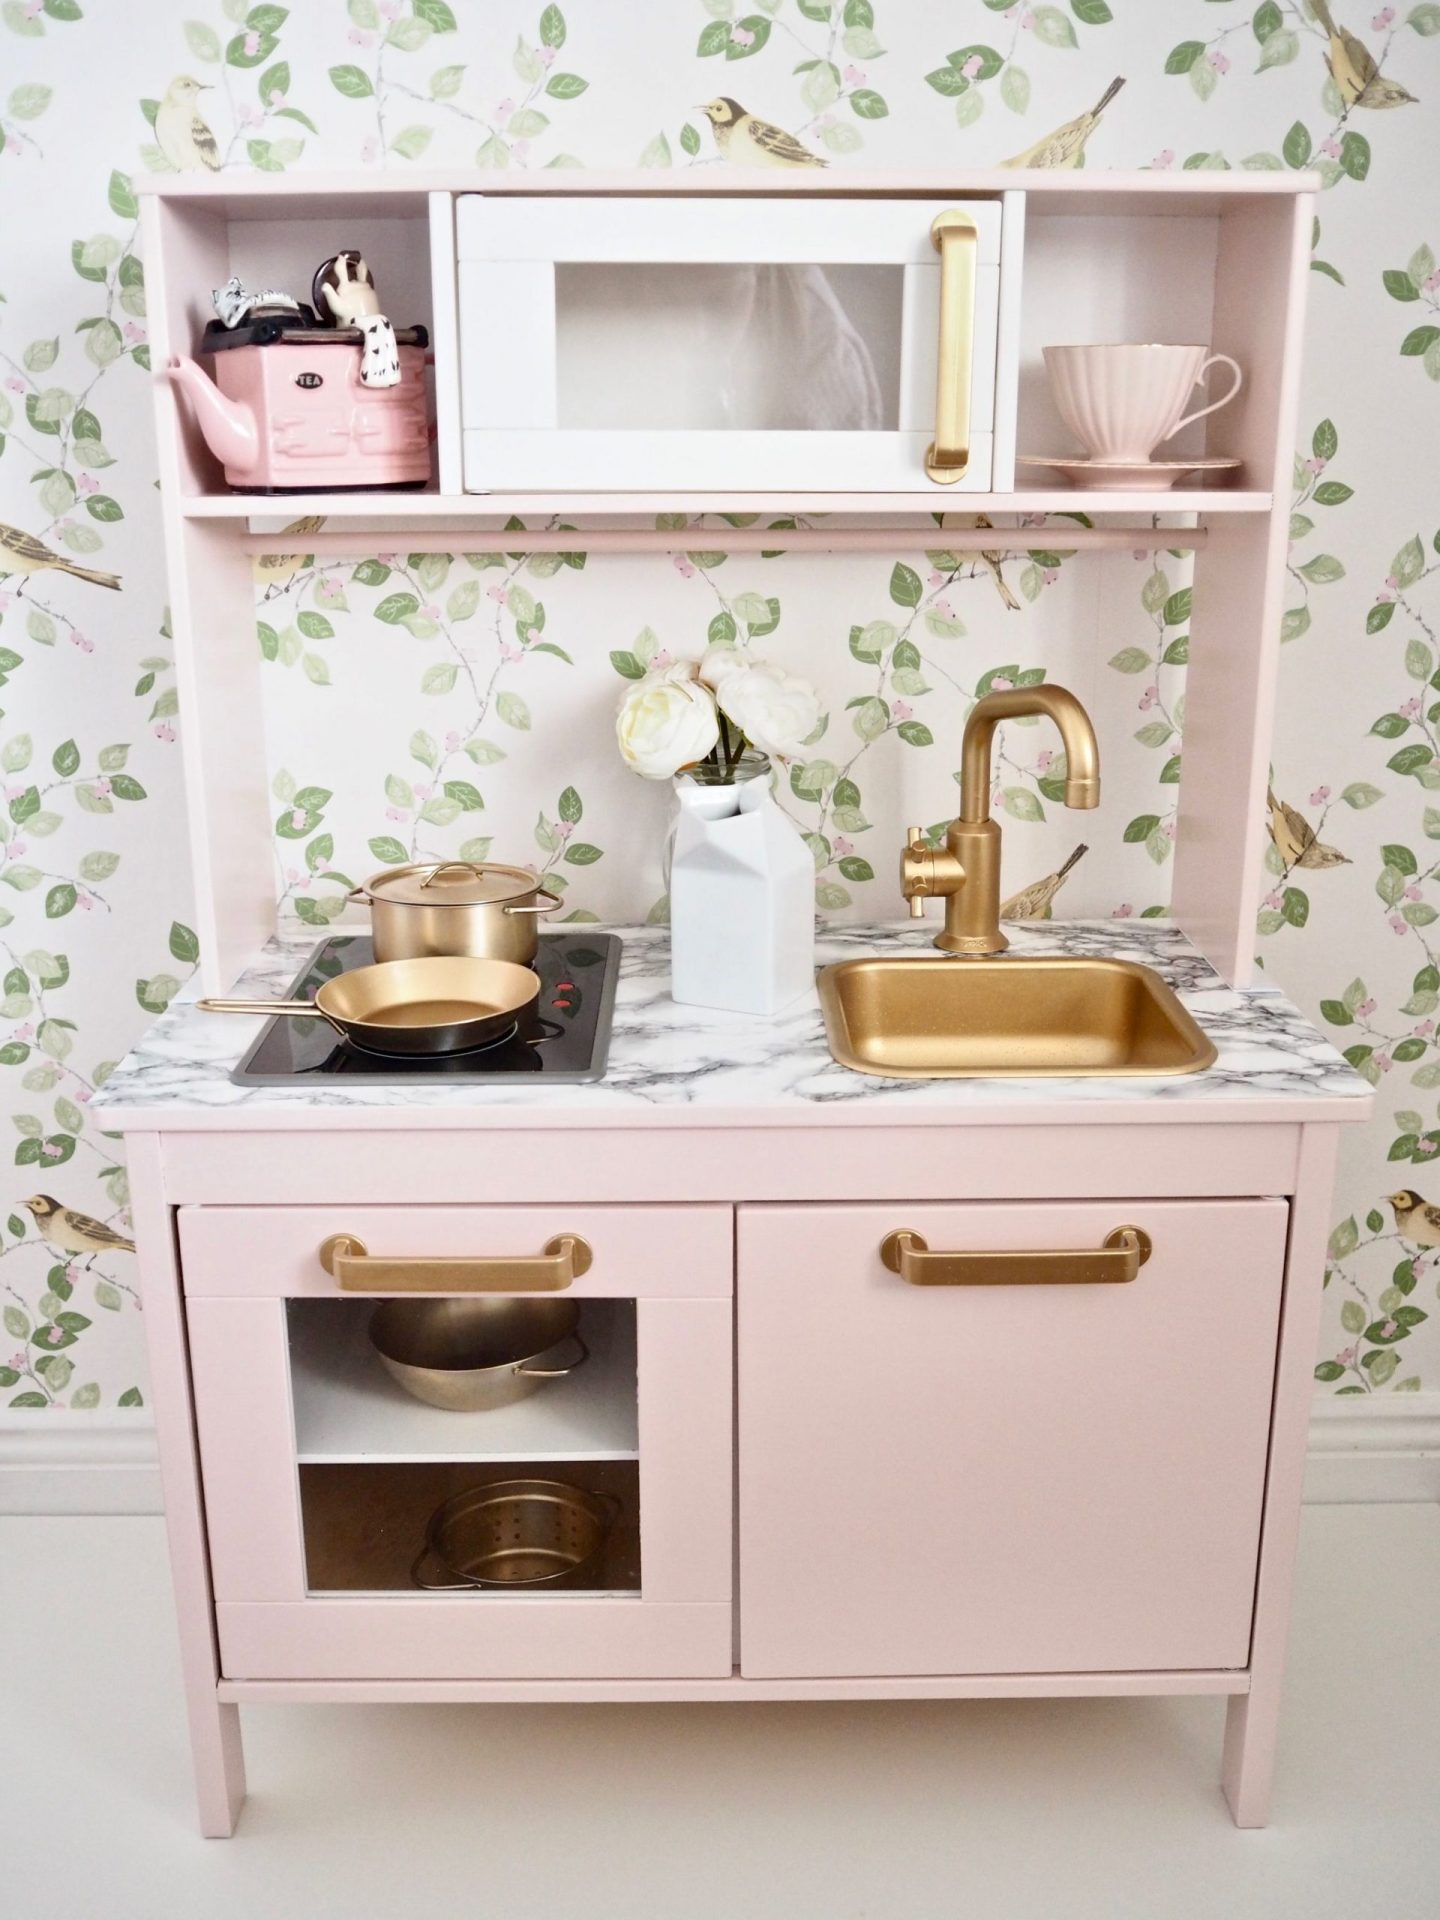 Ikea Duktig kids kitchen